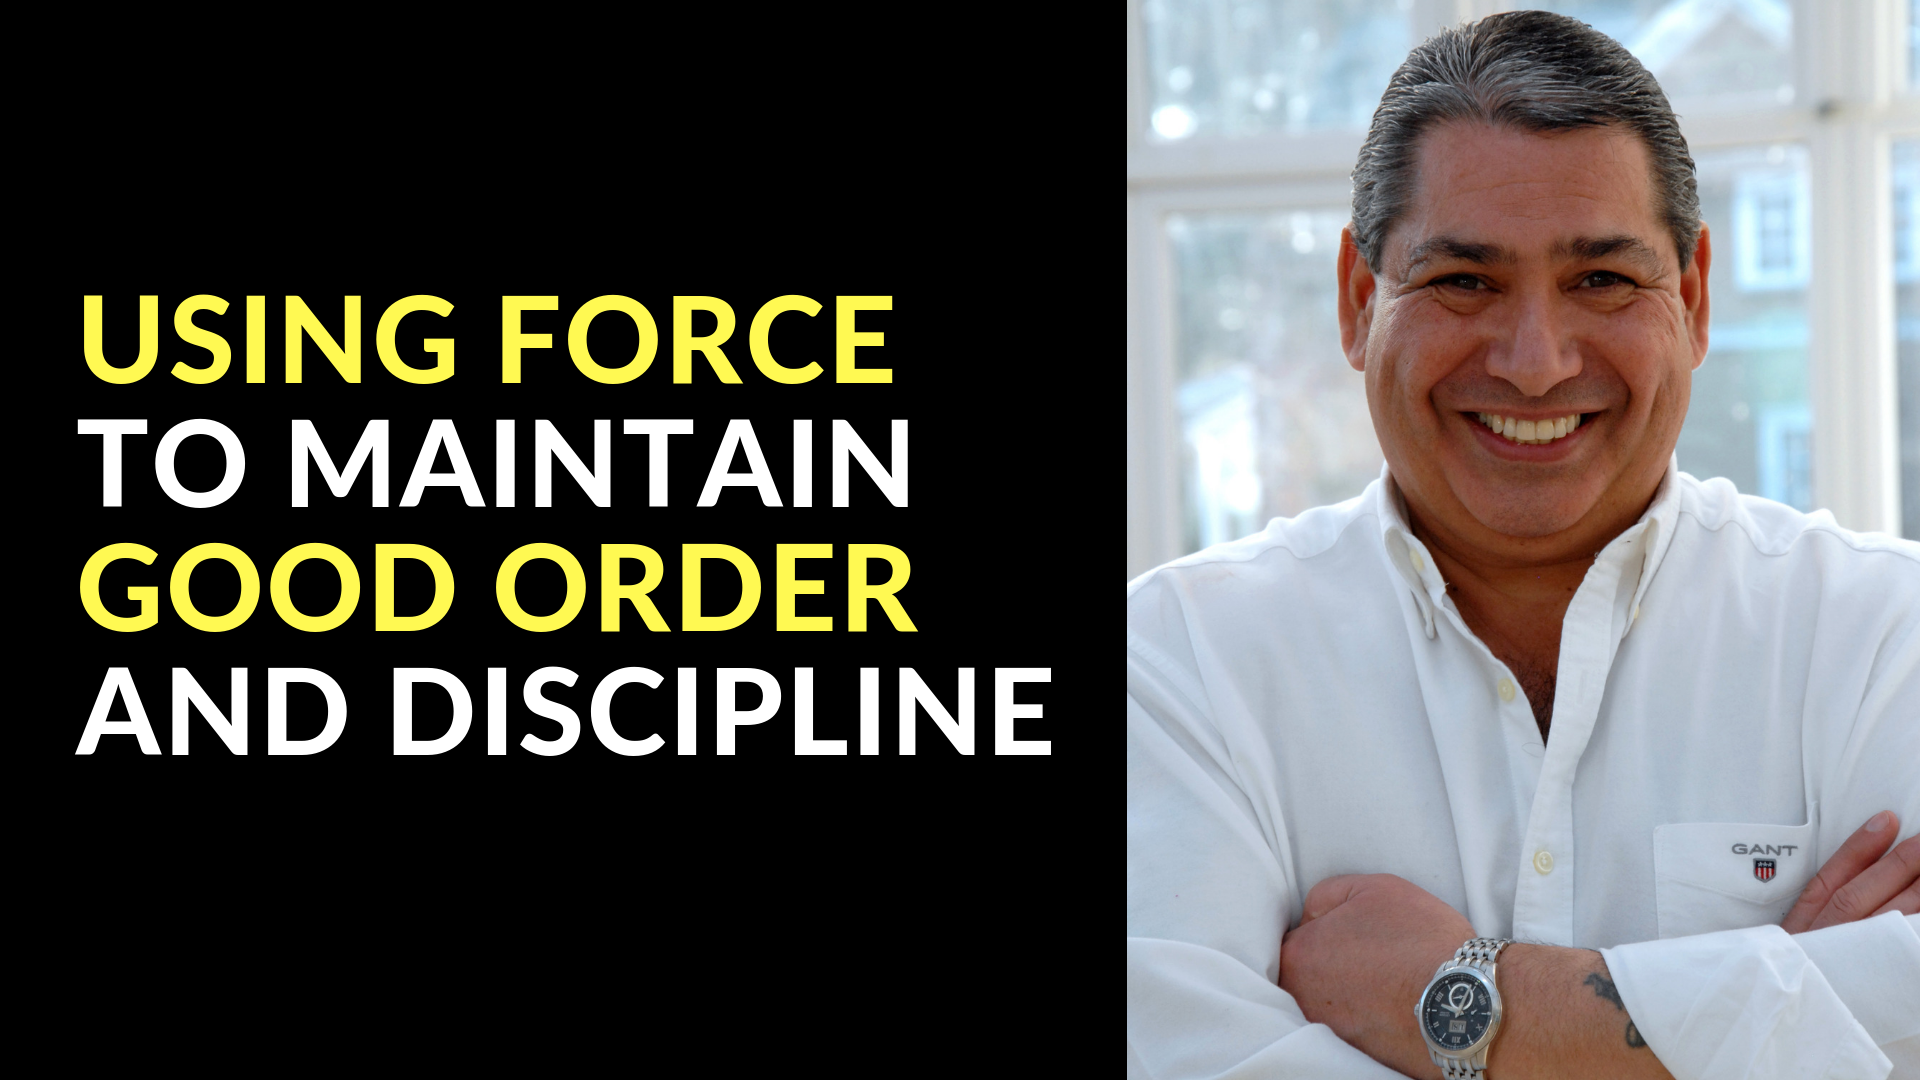 USING FORCE TO MAINTAIN GOOD ORDER AND DISCIPLINE